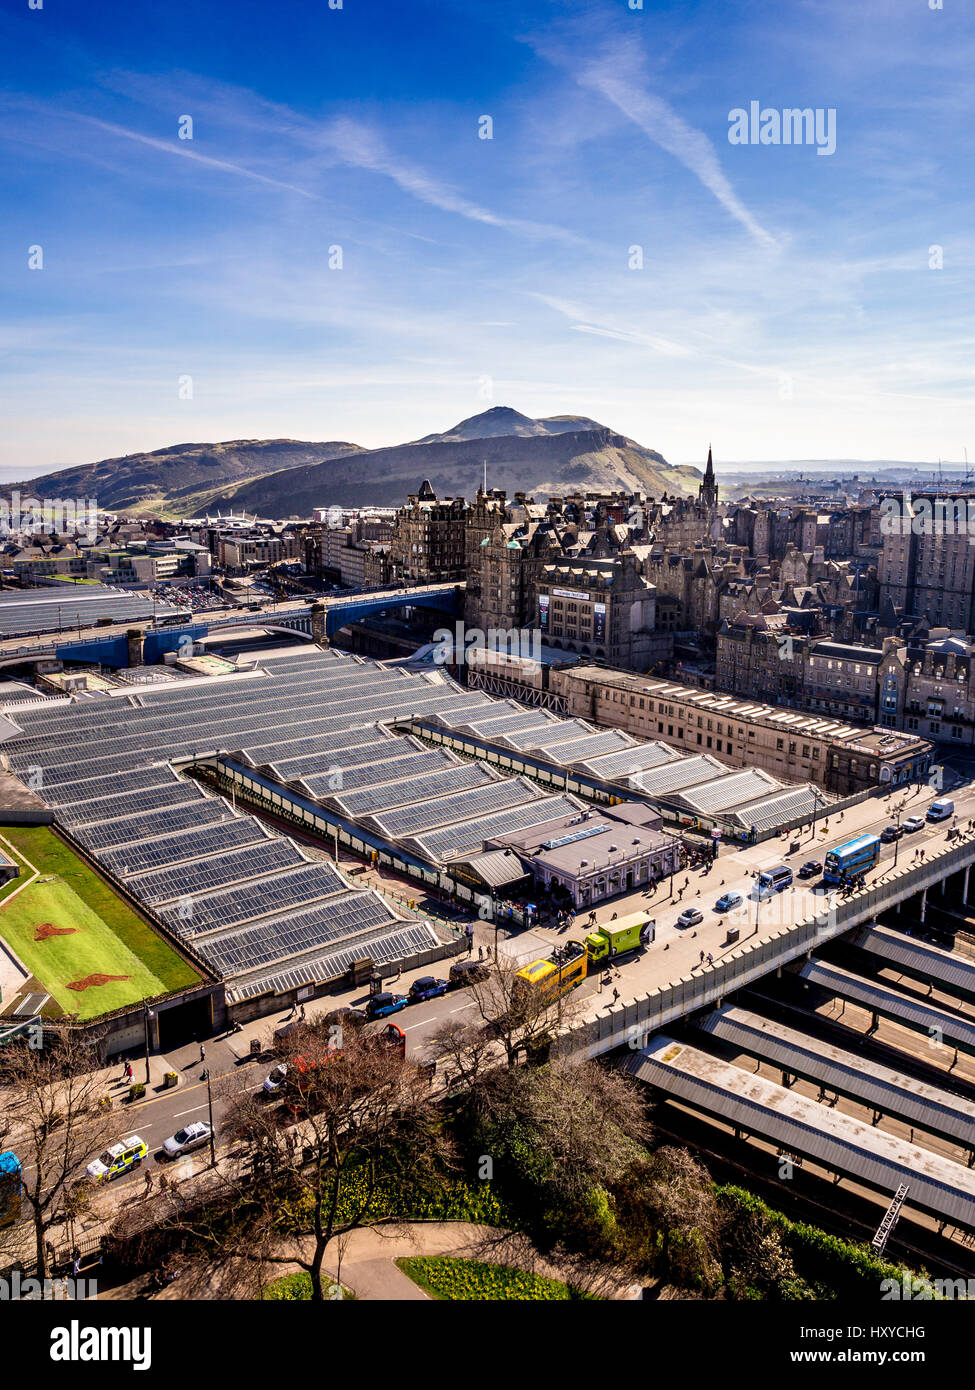 Edinburgh Waverley Station exterior showing Waverley Bridge at west of station and extensive glass roof covering - Stock Image